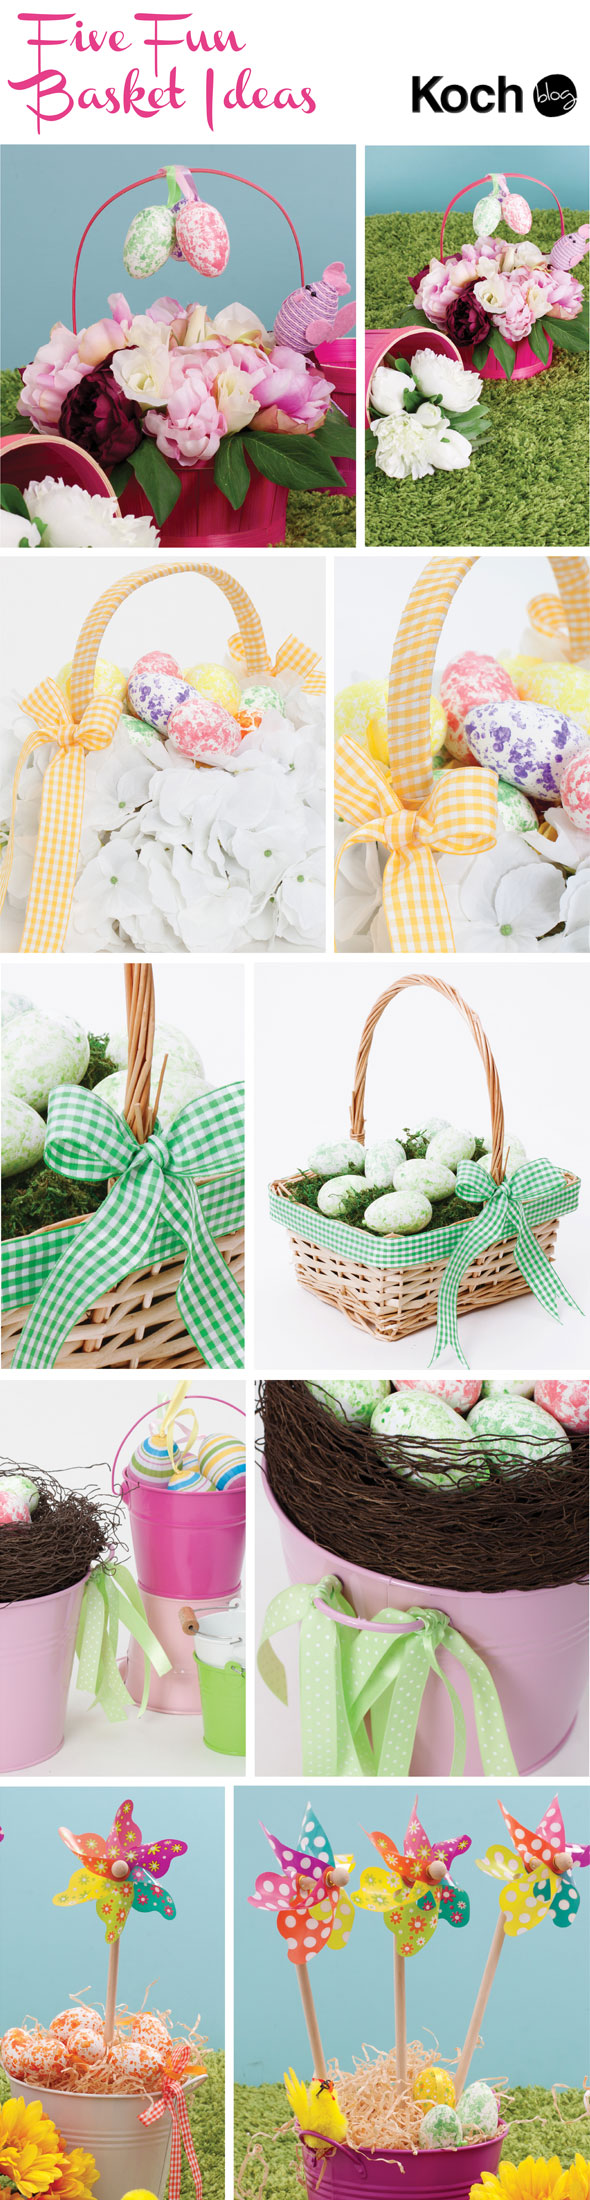 Diy easter egg hunt baskets the koch blog diy easter basket and hamper inspirations negle Images